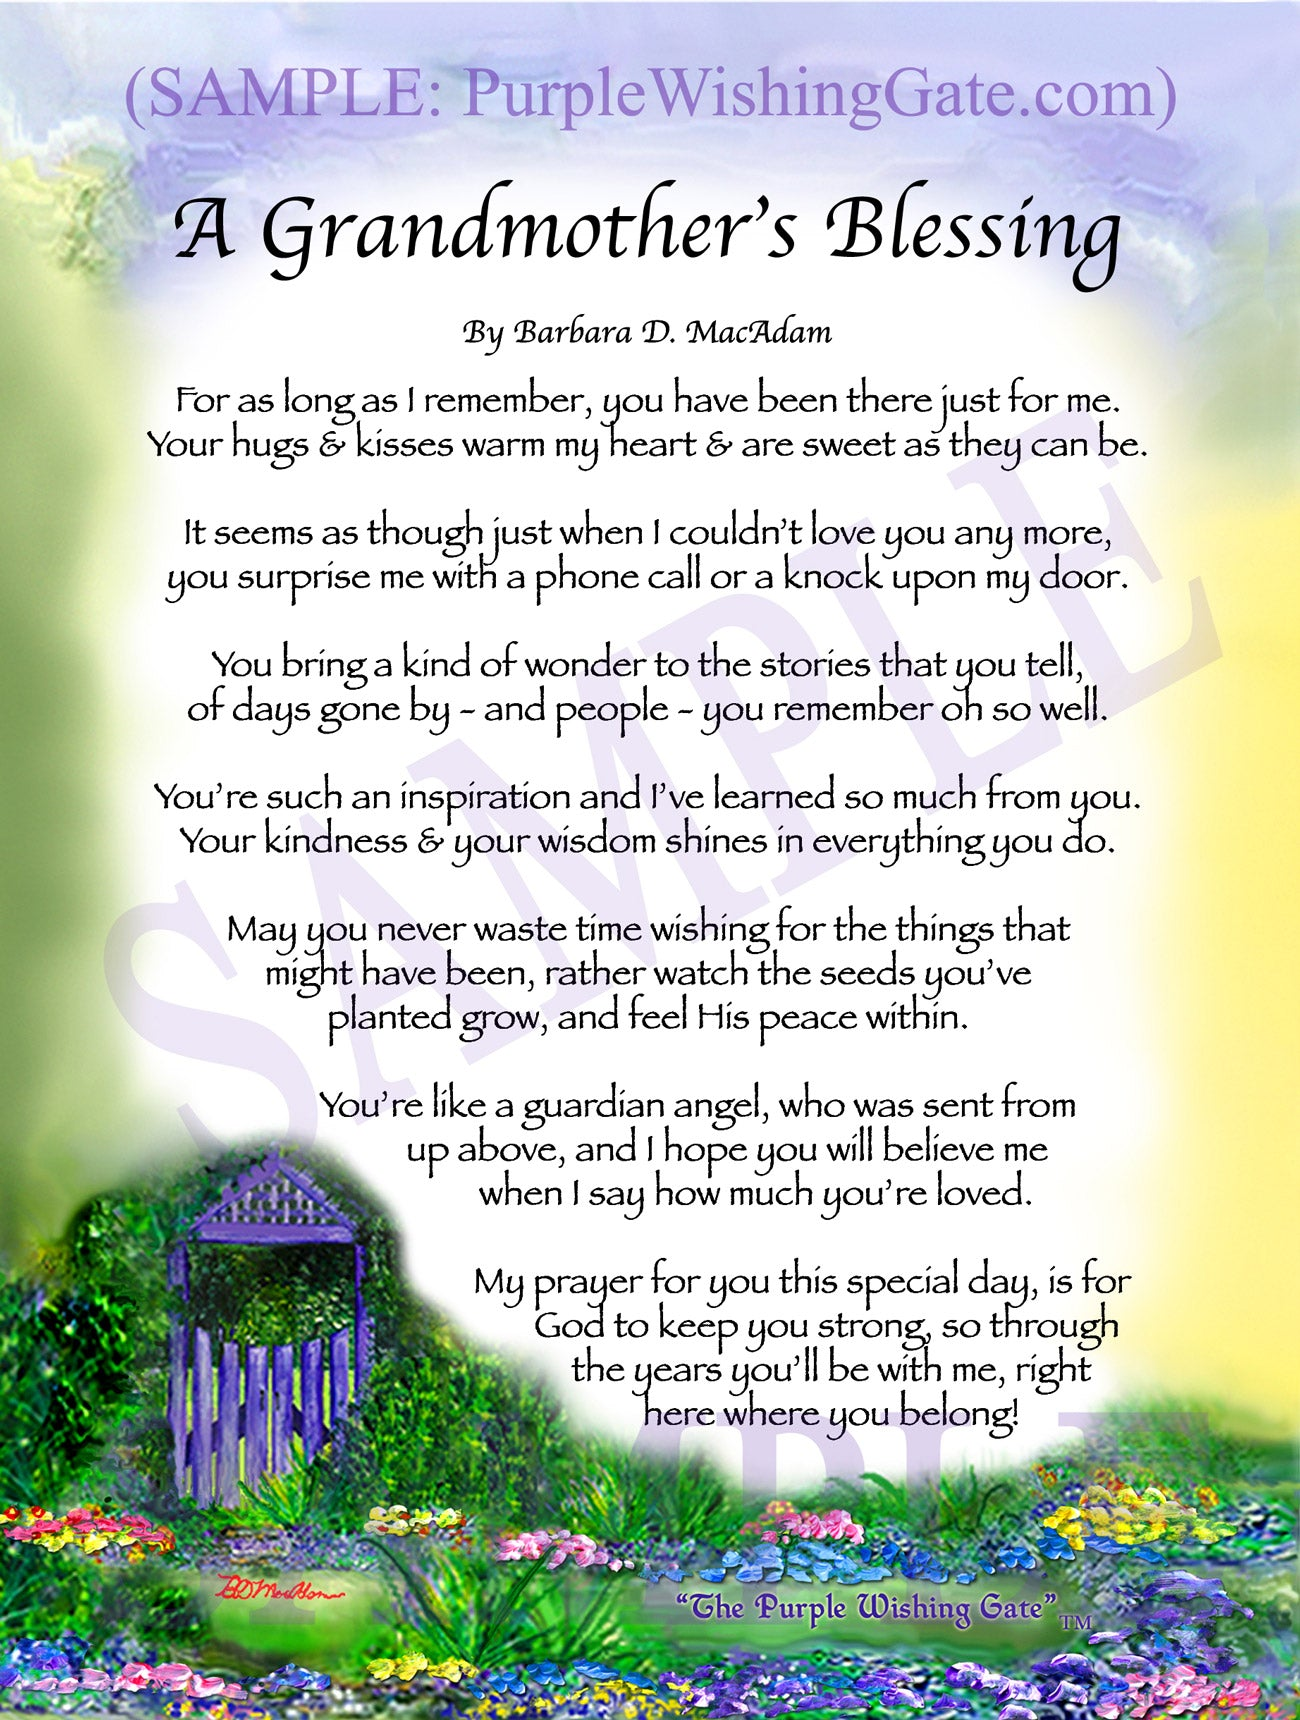 A Grandmother's Blessing - Gifts for Grandmother - PurpleWishingGate.com